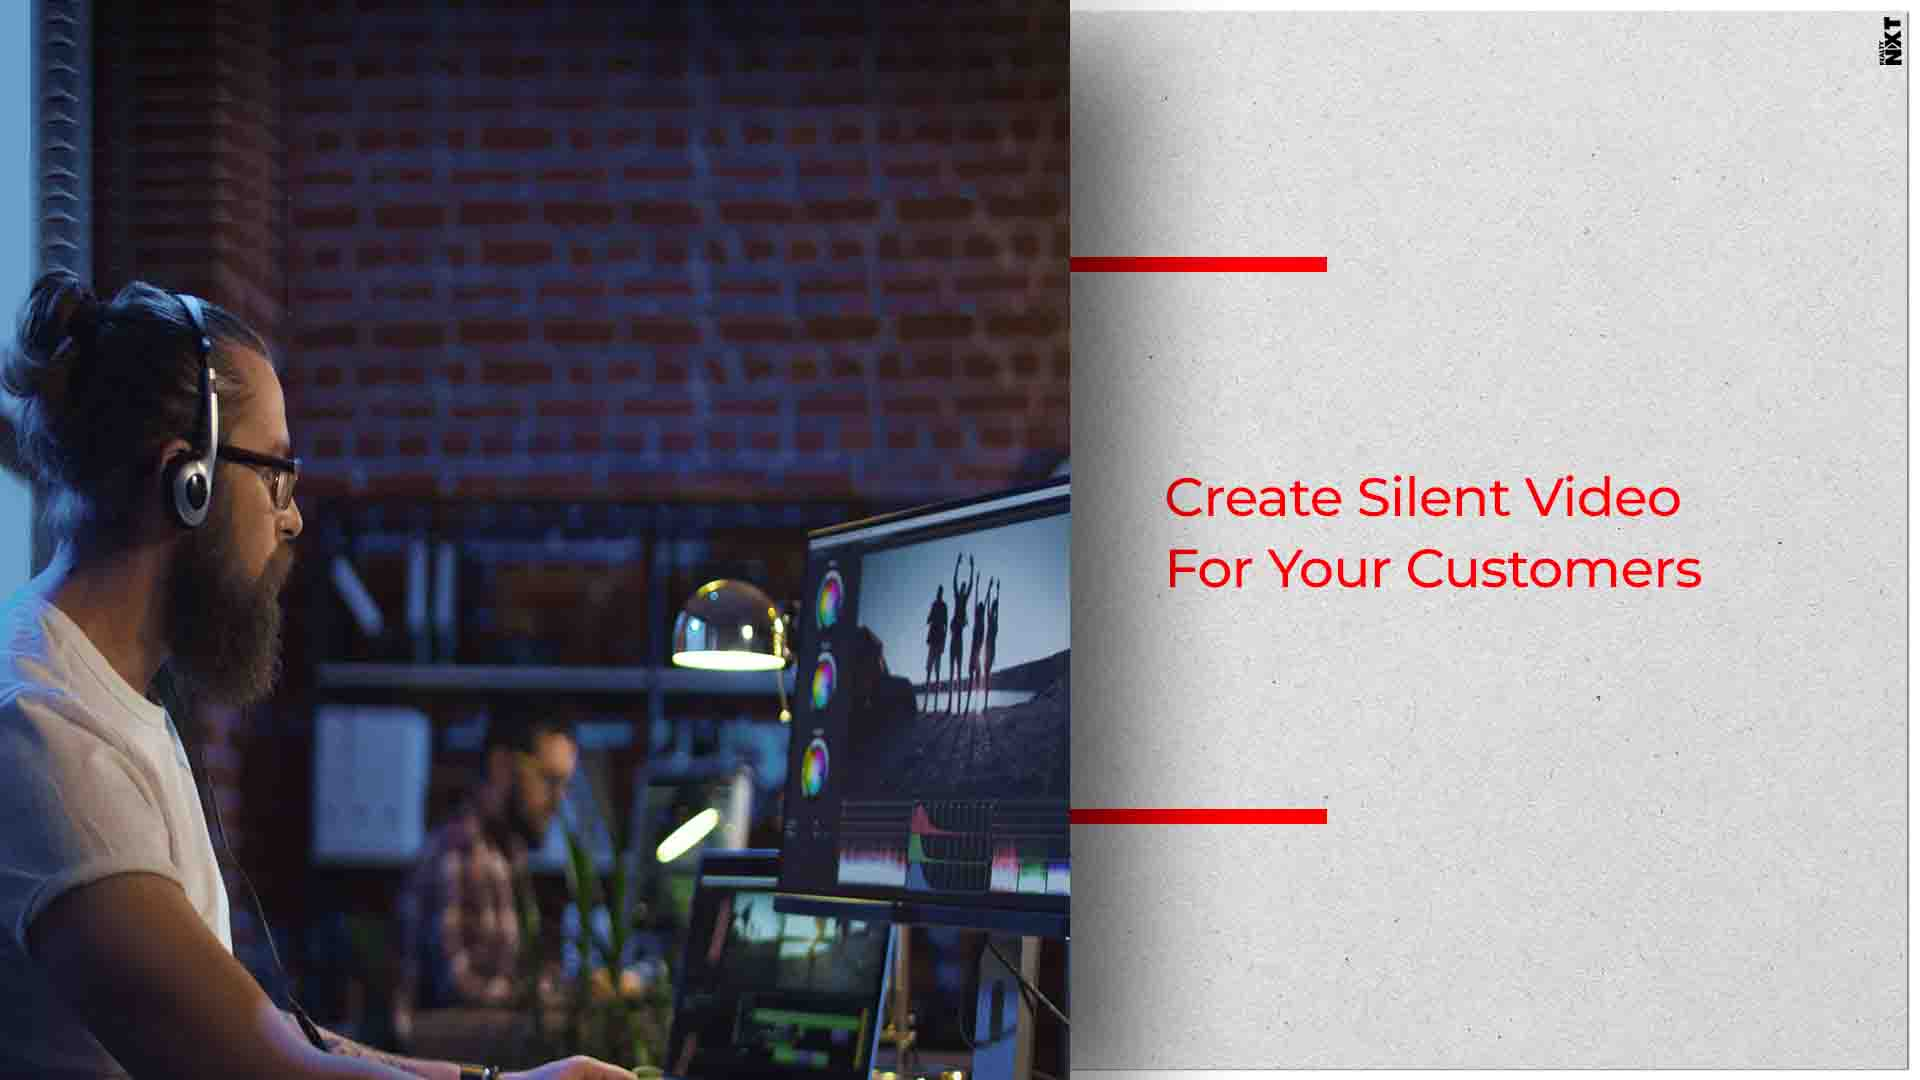 Tips for Creating Silent Videos for Consumers